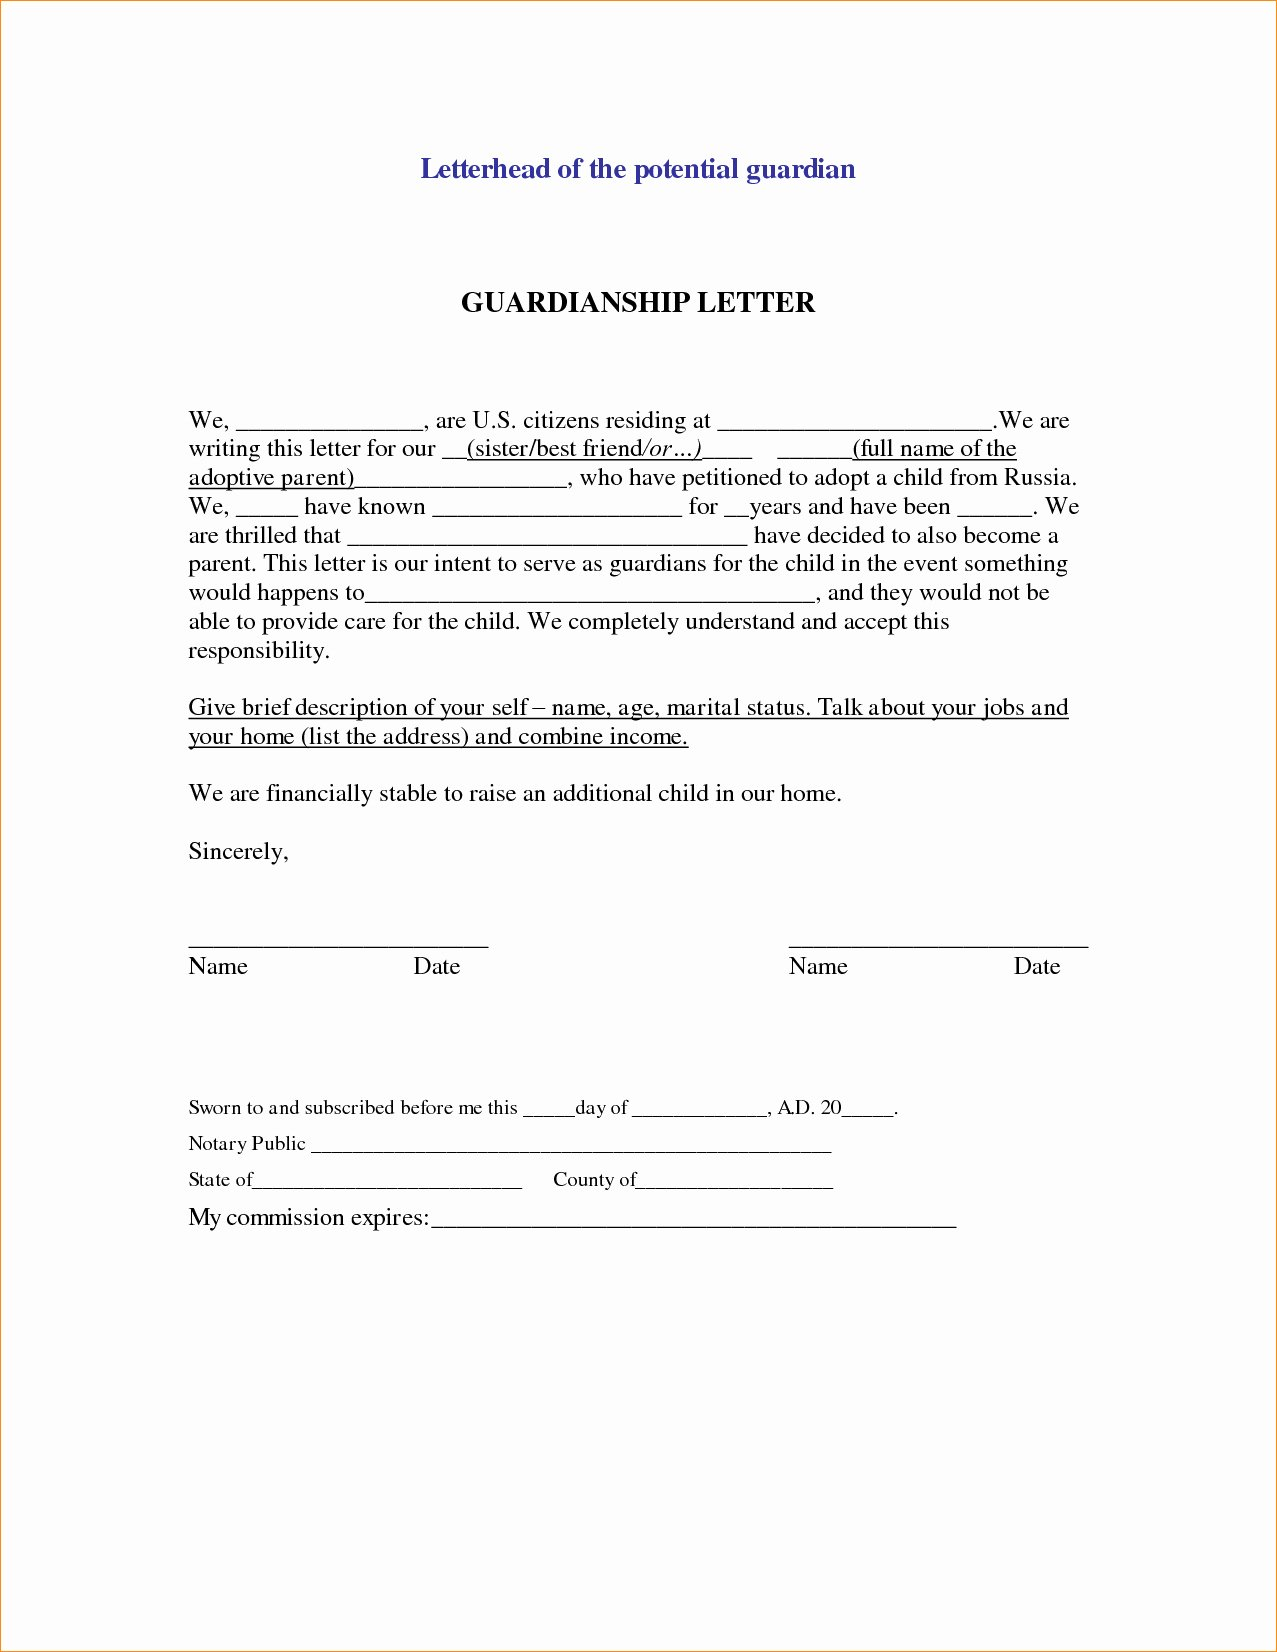 Legal Letter format Template Lovely Permanent Guardianship Letter Template Collection